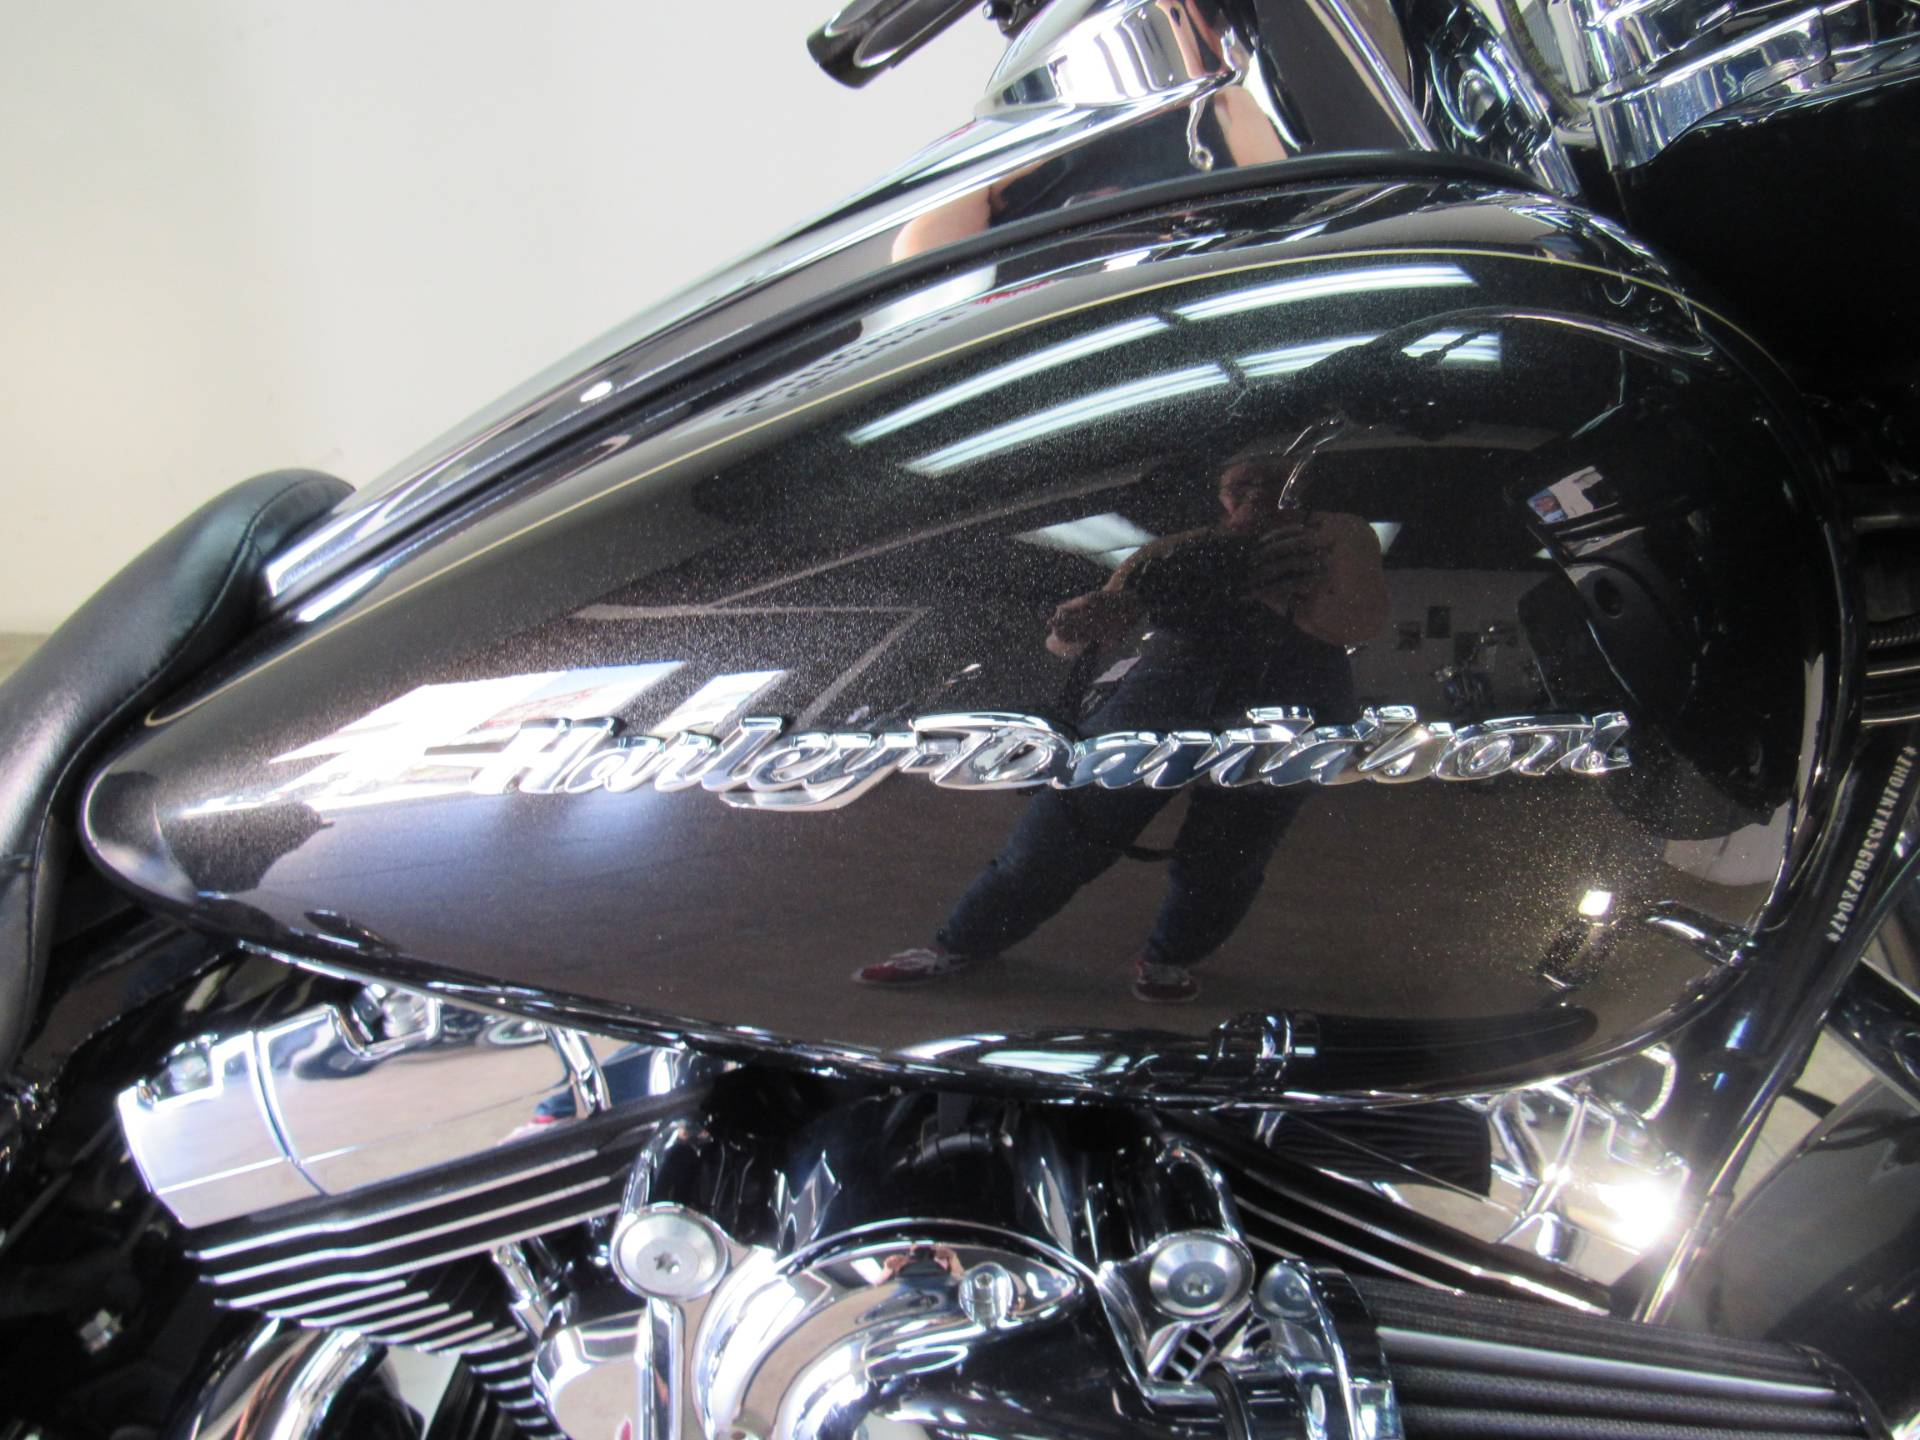 2016 Harley-Davidson Road Glide® Special in Temecula, California - Photo 4